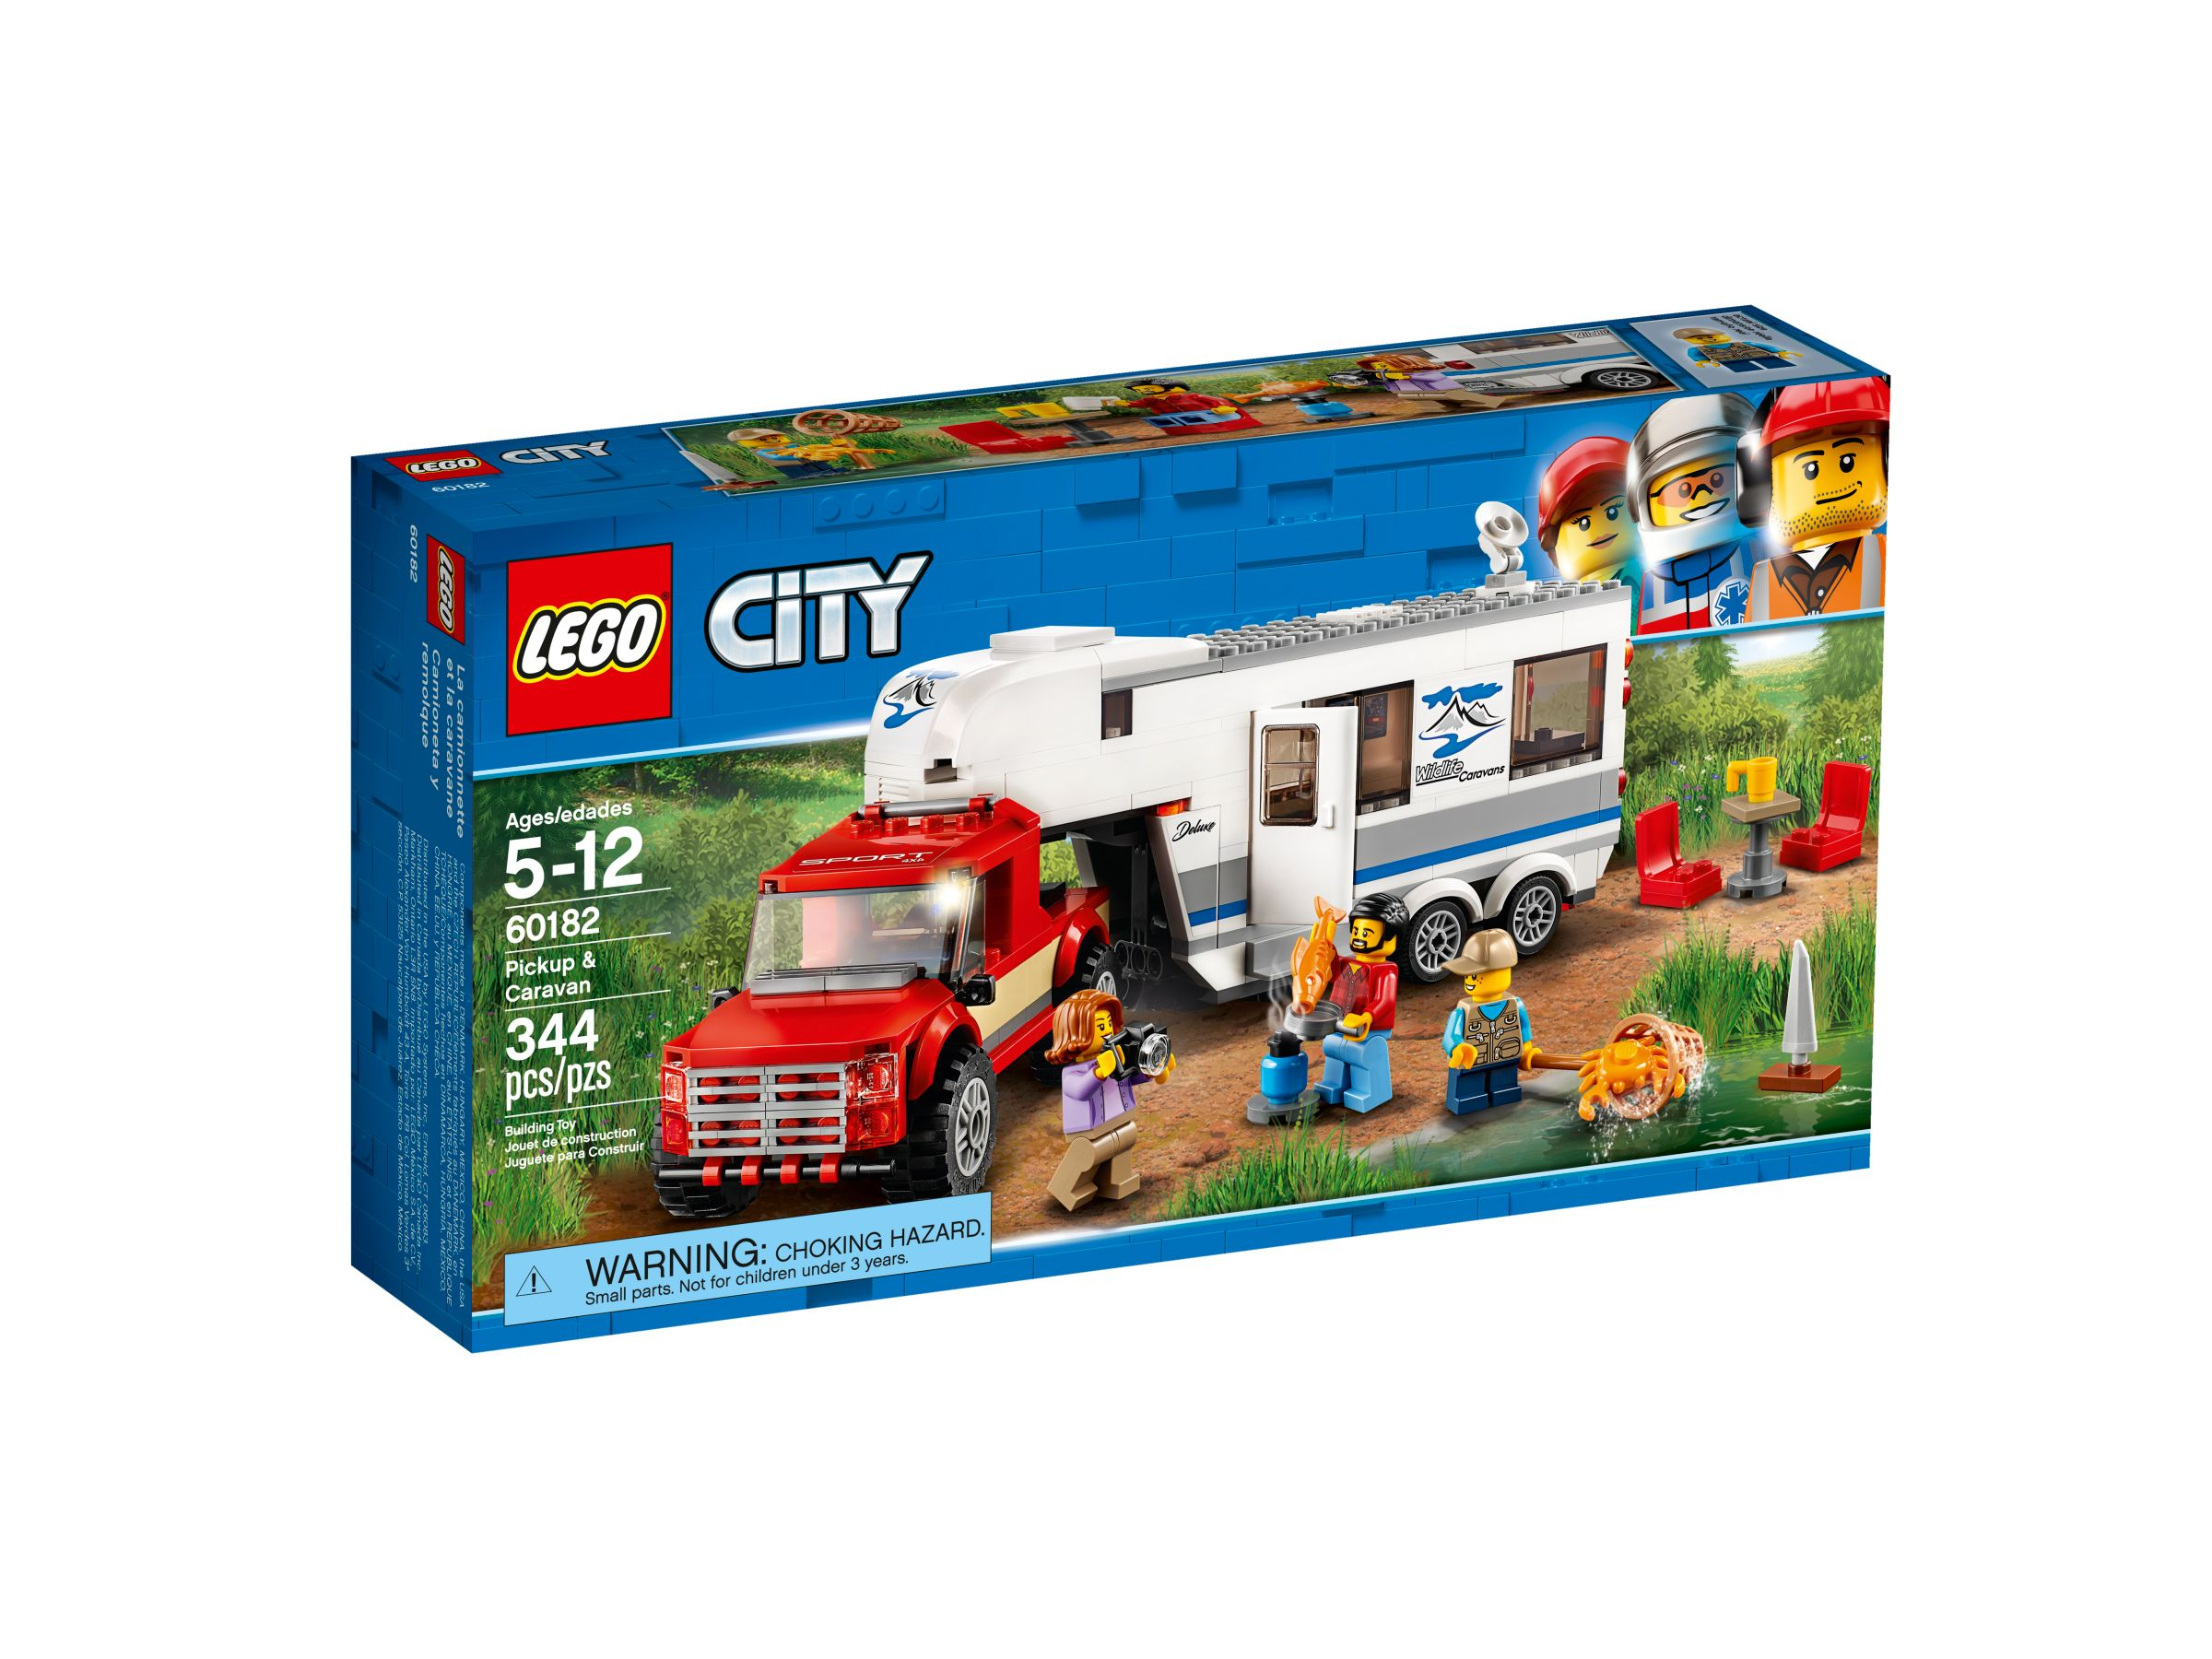 lego 60182 pickup wohnwagen city 2018 ab 20 97 30 gespart pickup caravan brickmerge. Black Bedroom Furniture Sets. Home Design Ideas